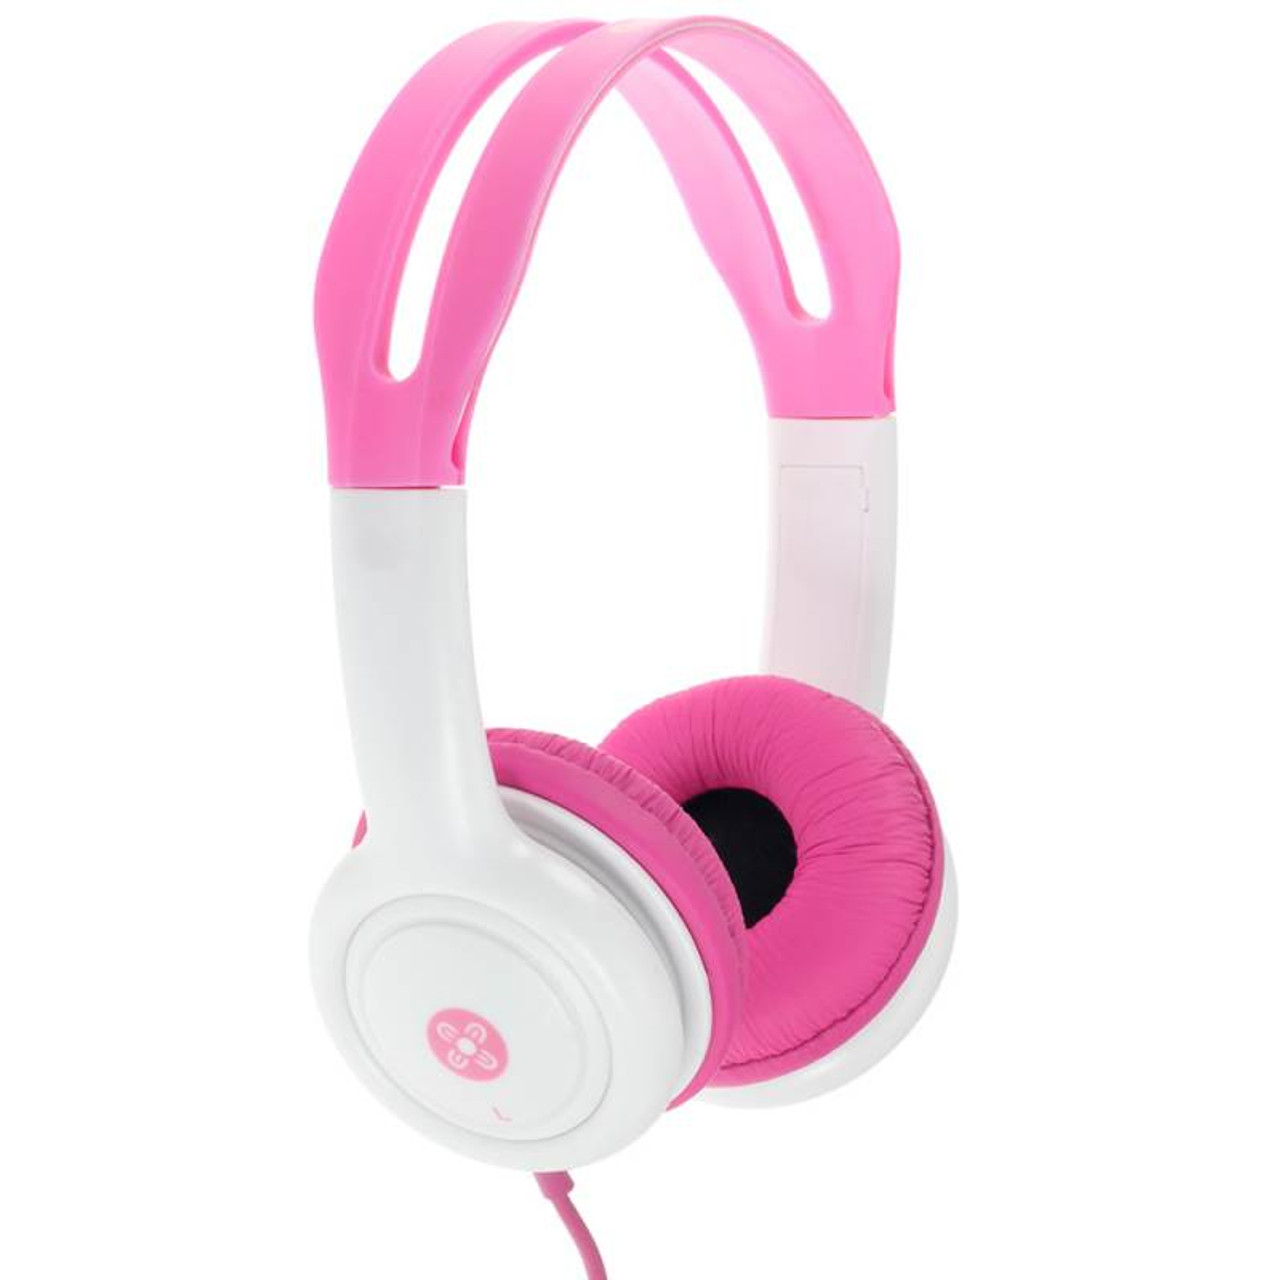 Image for Moki Volume Limited Headphones for Kids - Pink CX Computer Superstore